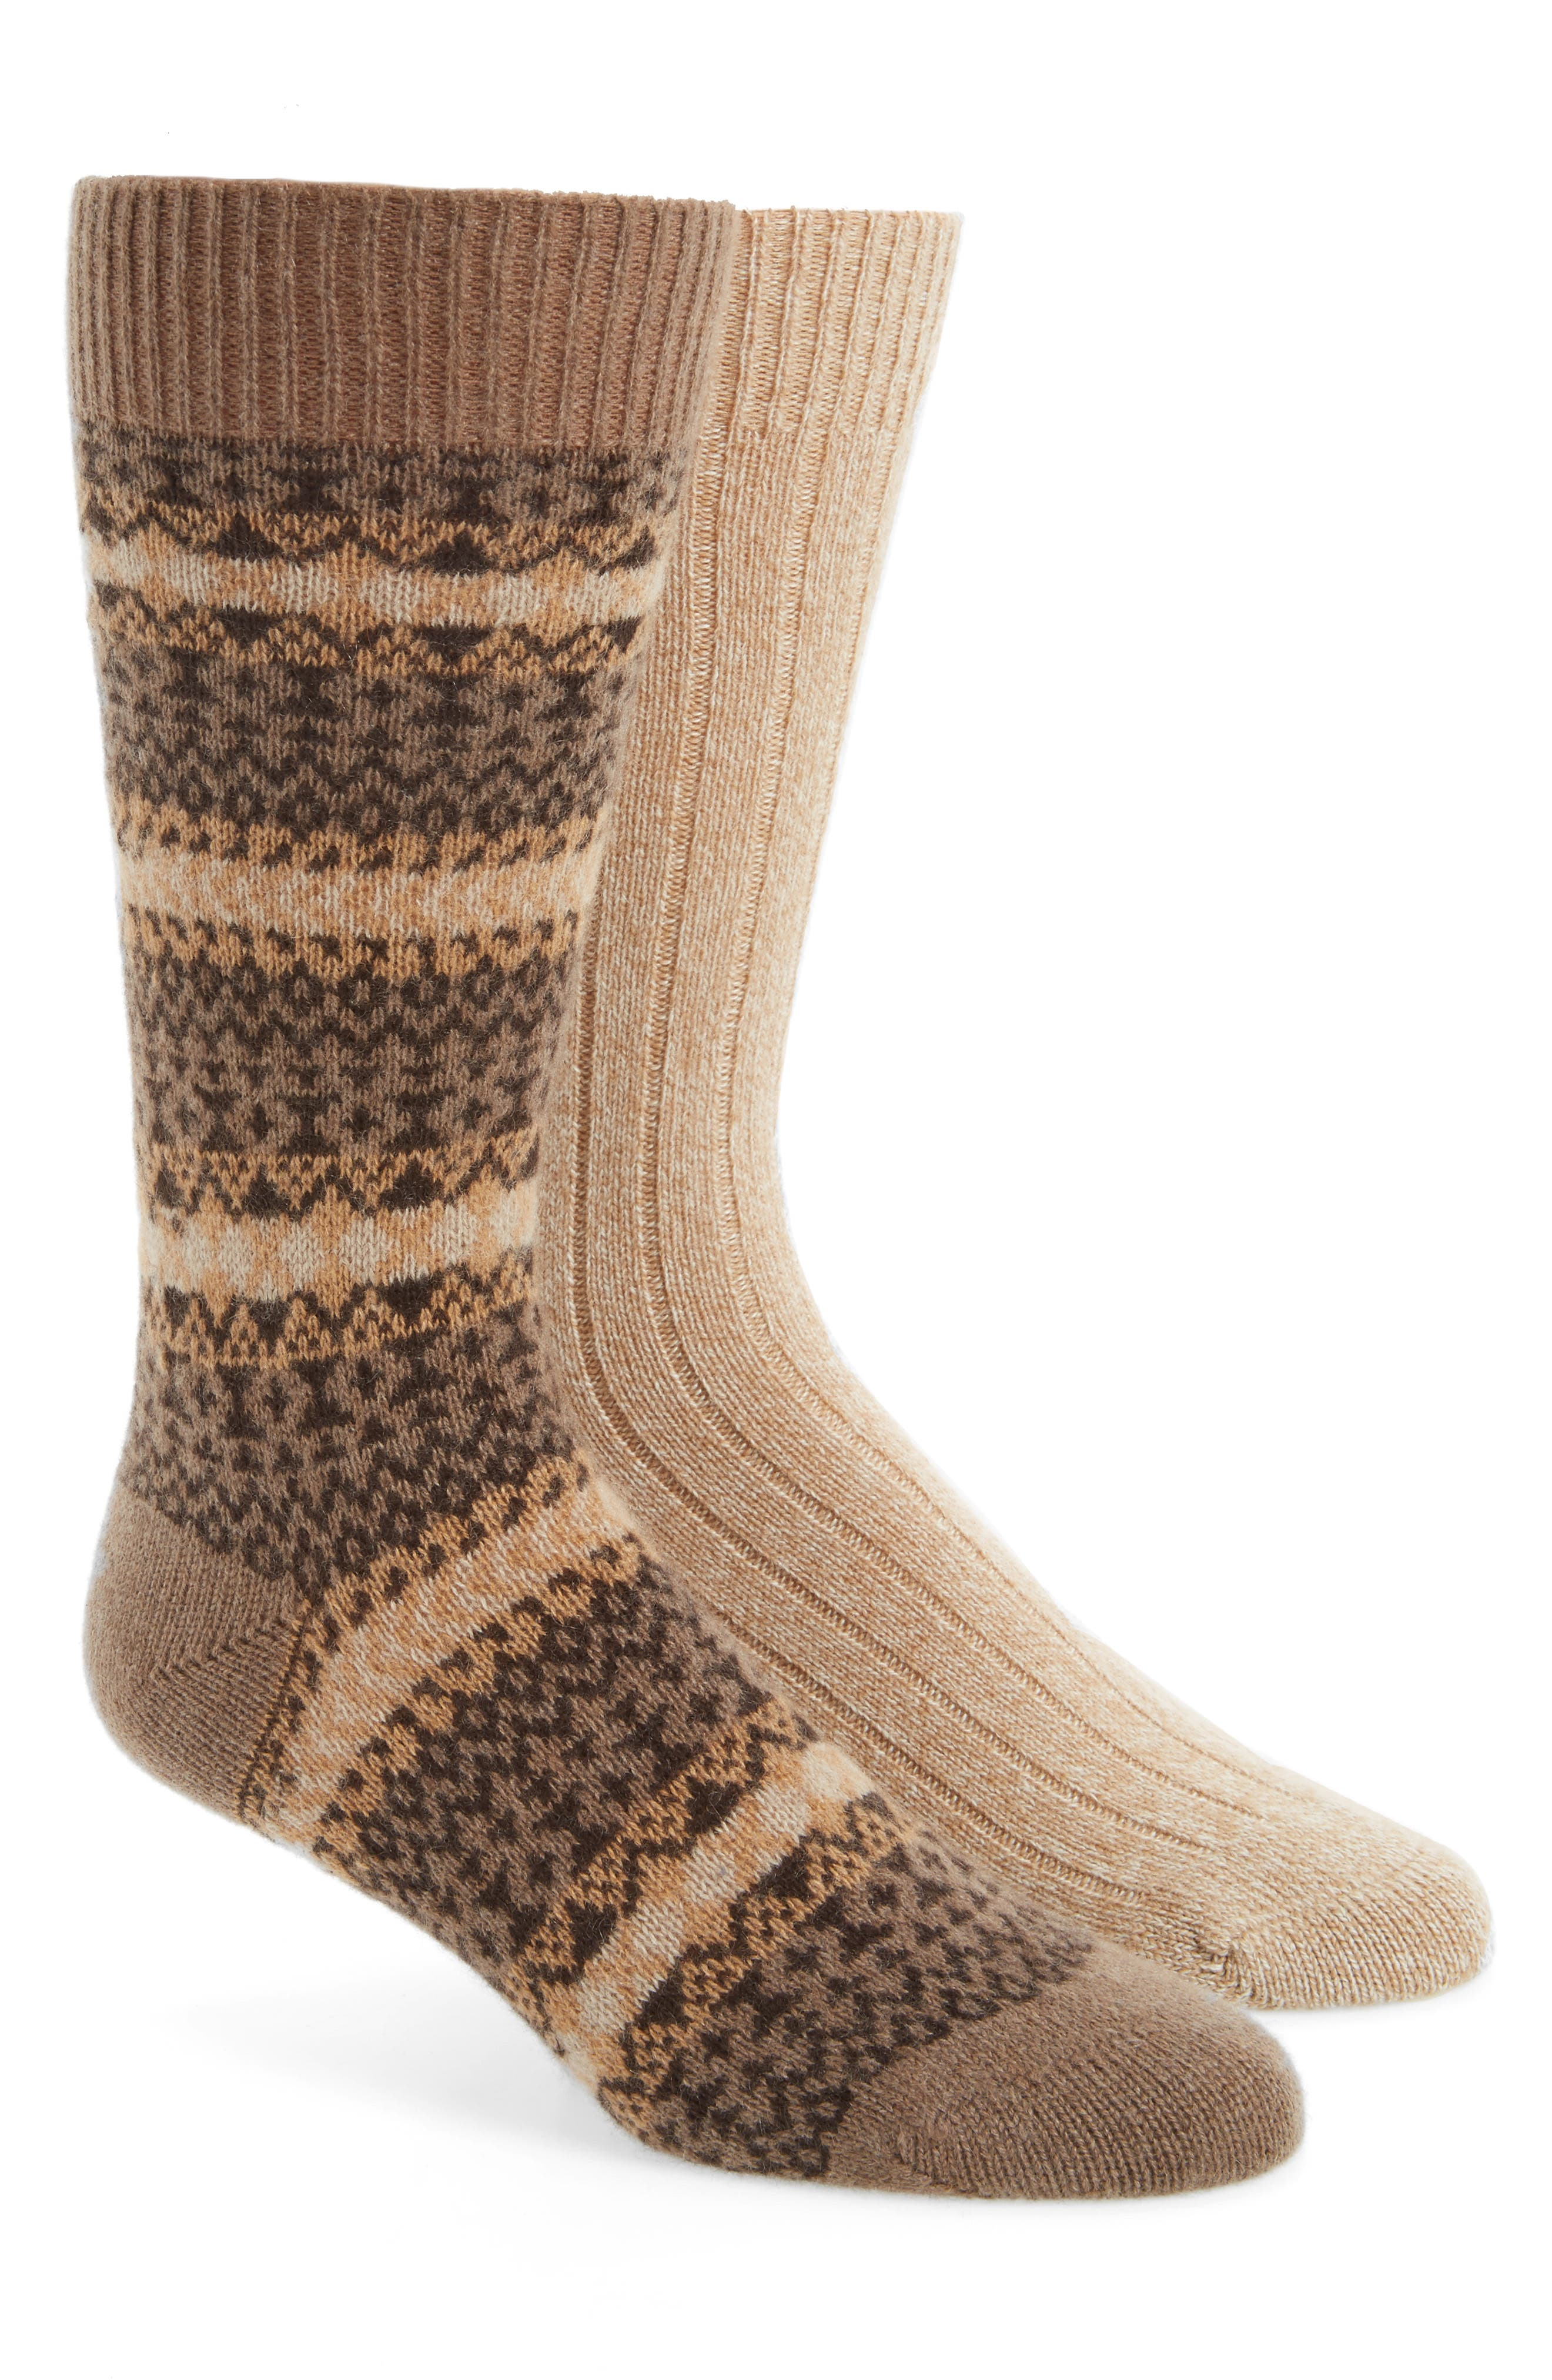 2-Pack Cashmere Blend Socks,                             Main thumbnail 1, color,                             Oatmeal Chine